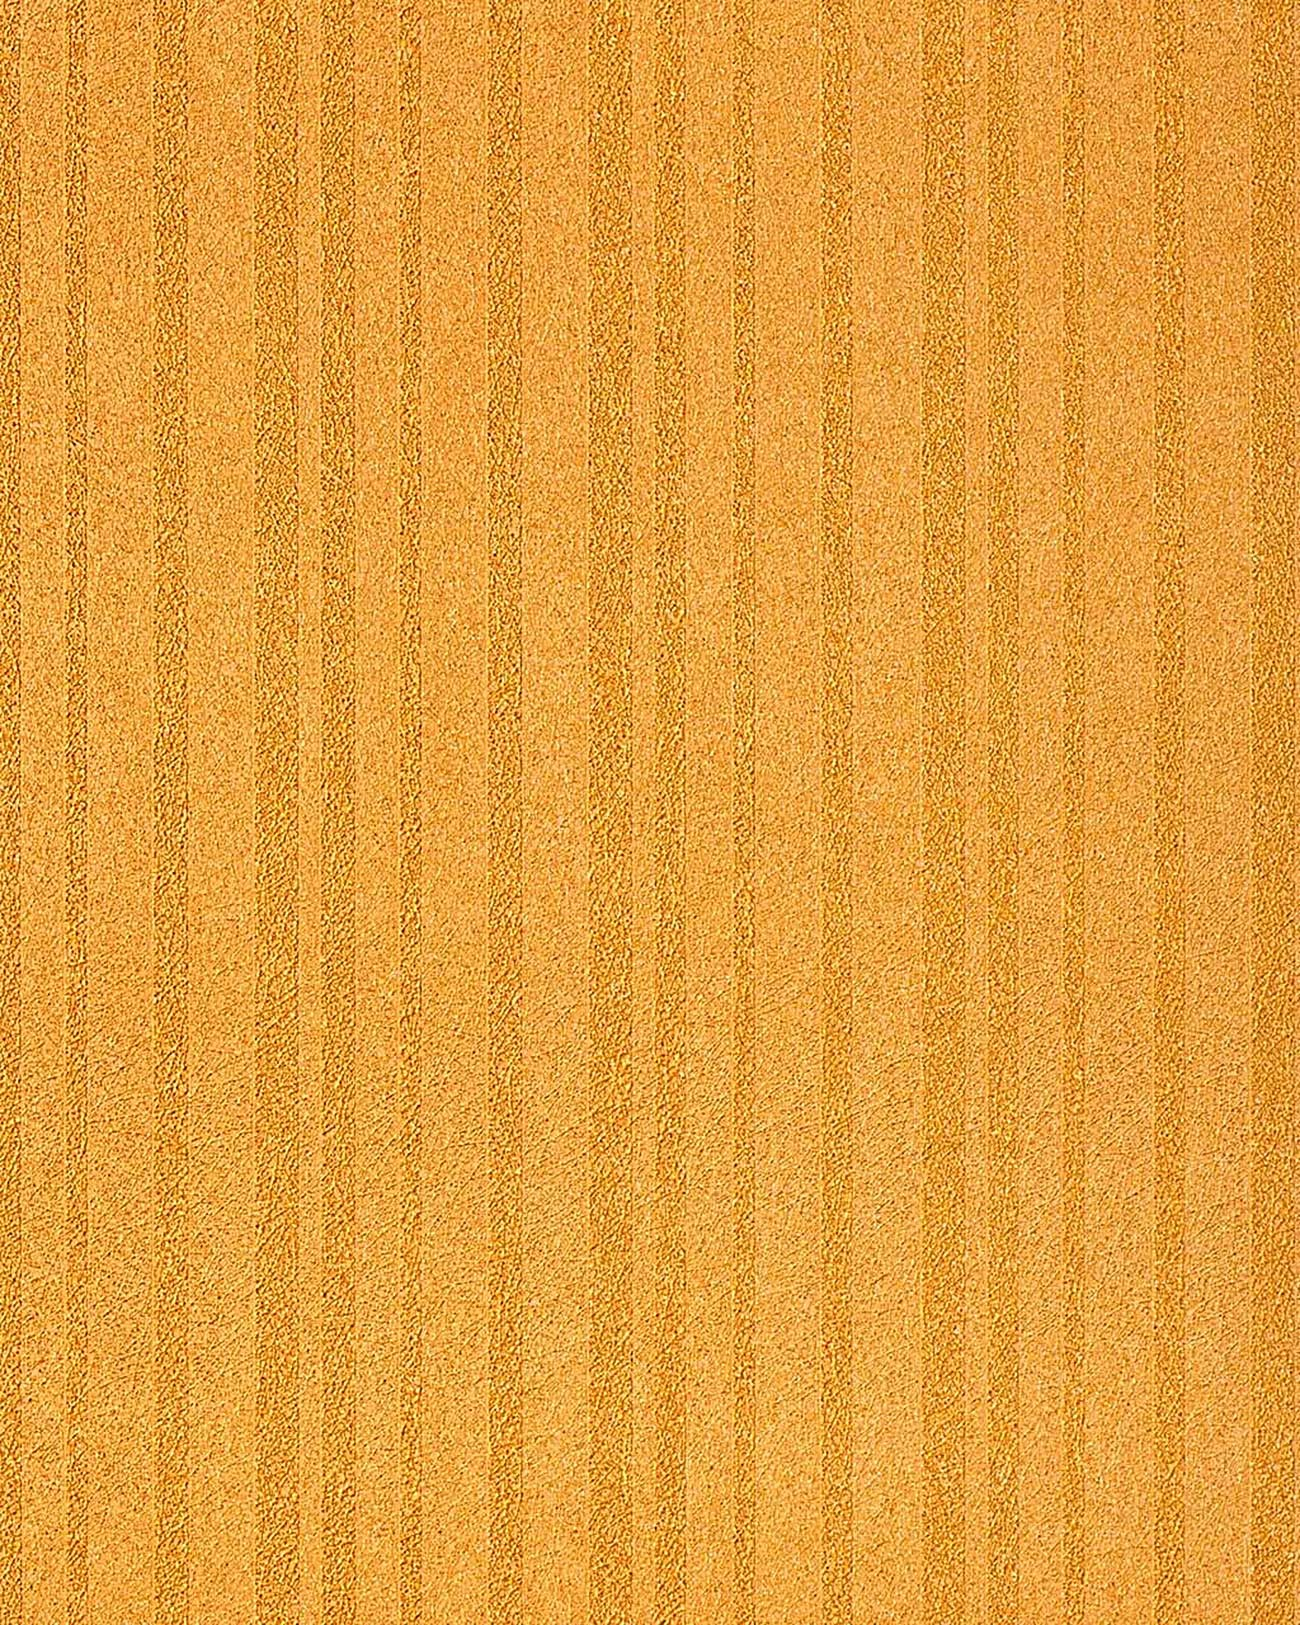 wallpaper wall EDEM 1015 11 texture striped vinyl extra washable gold 1300x1625